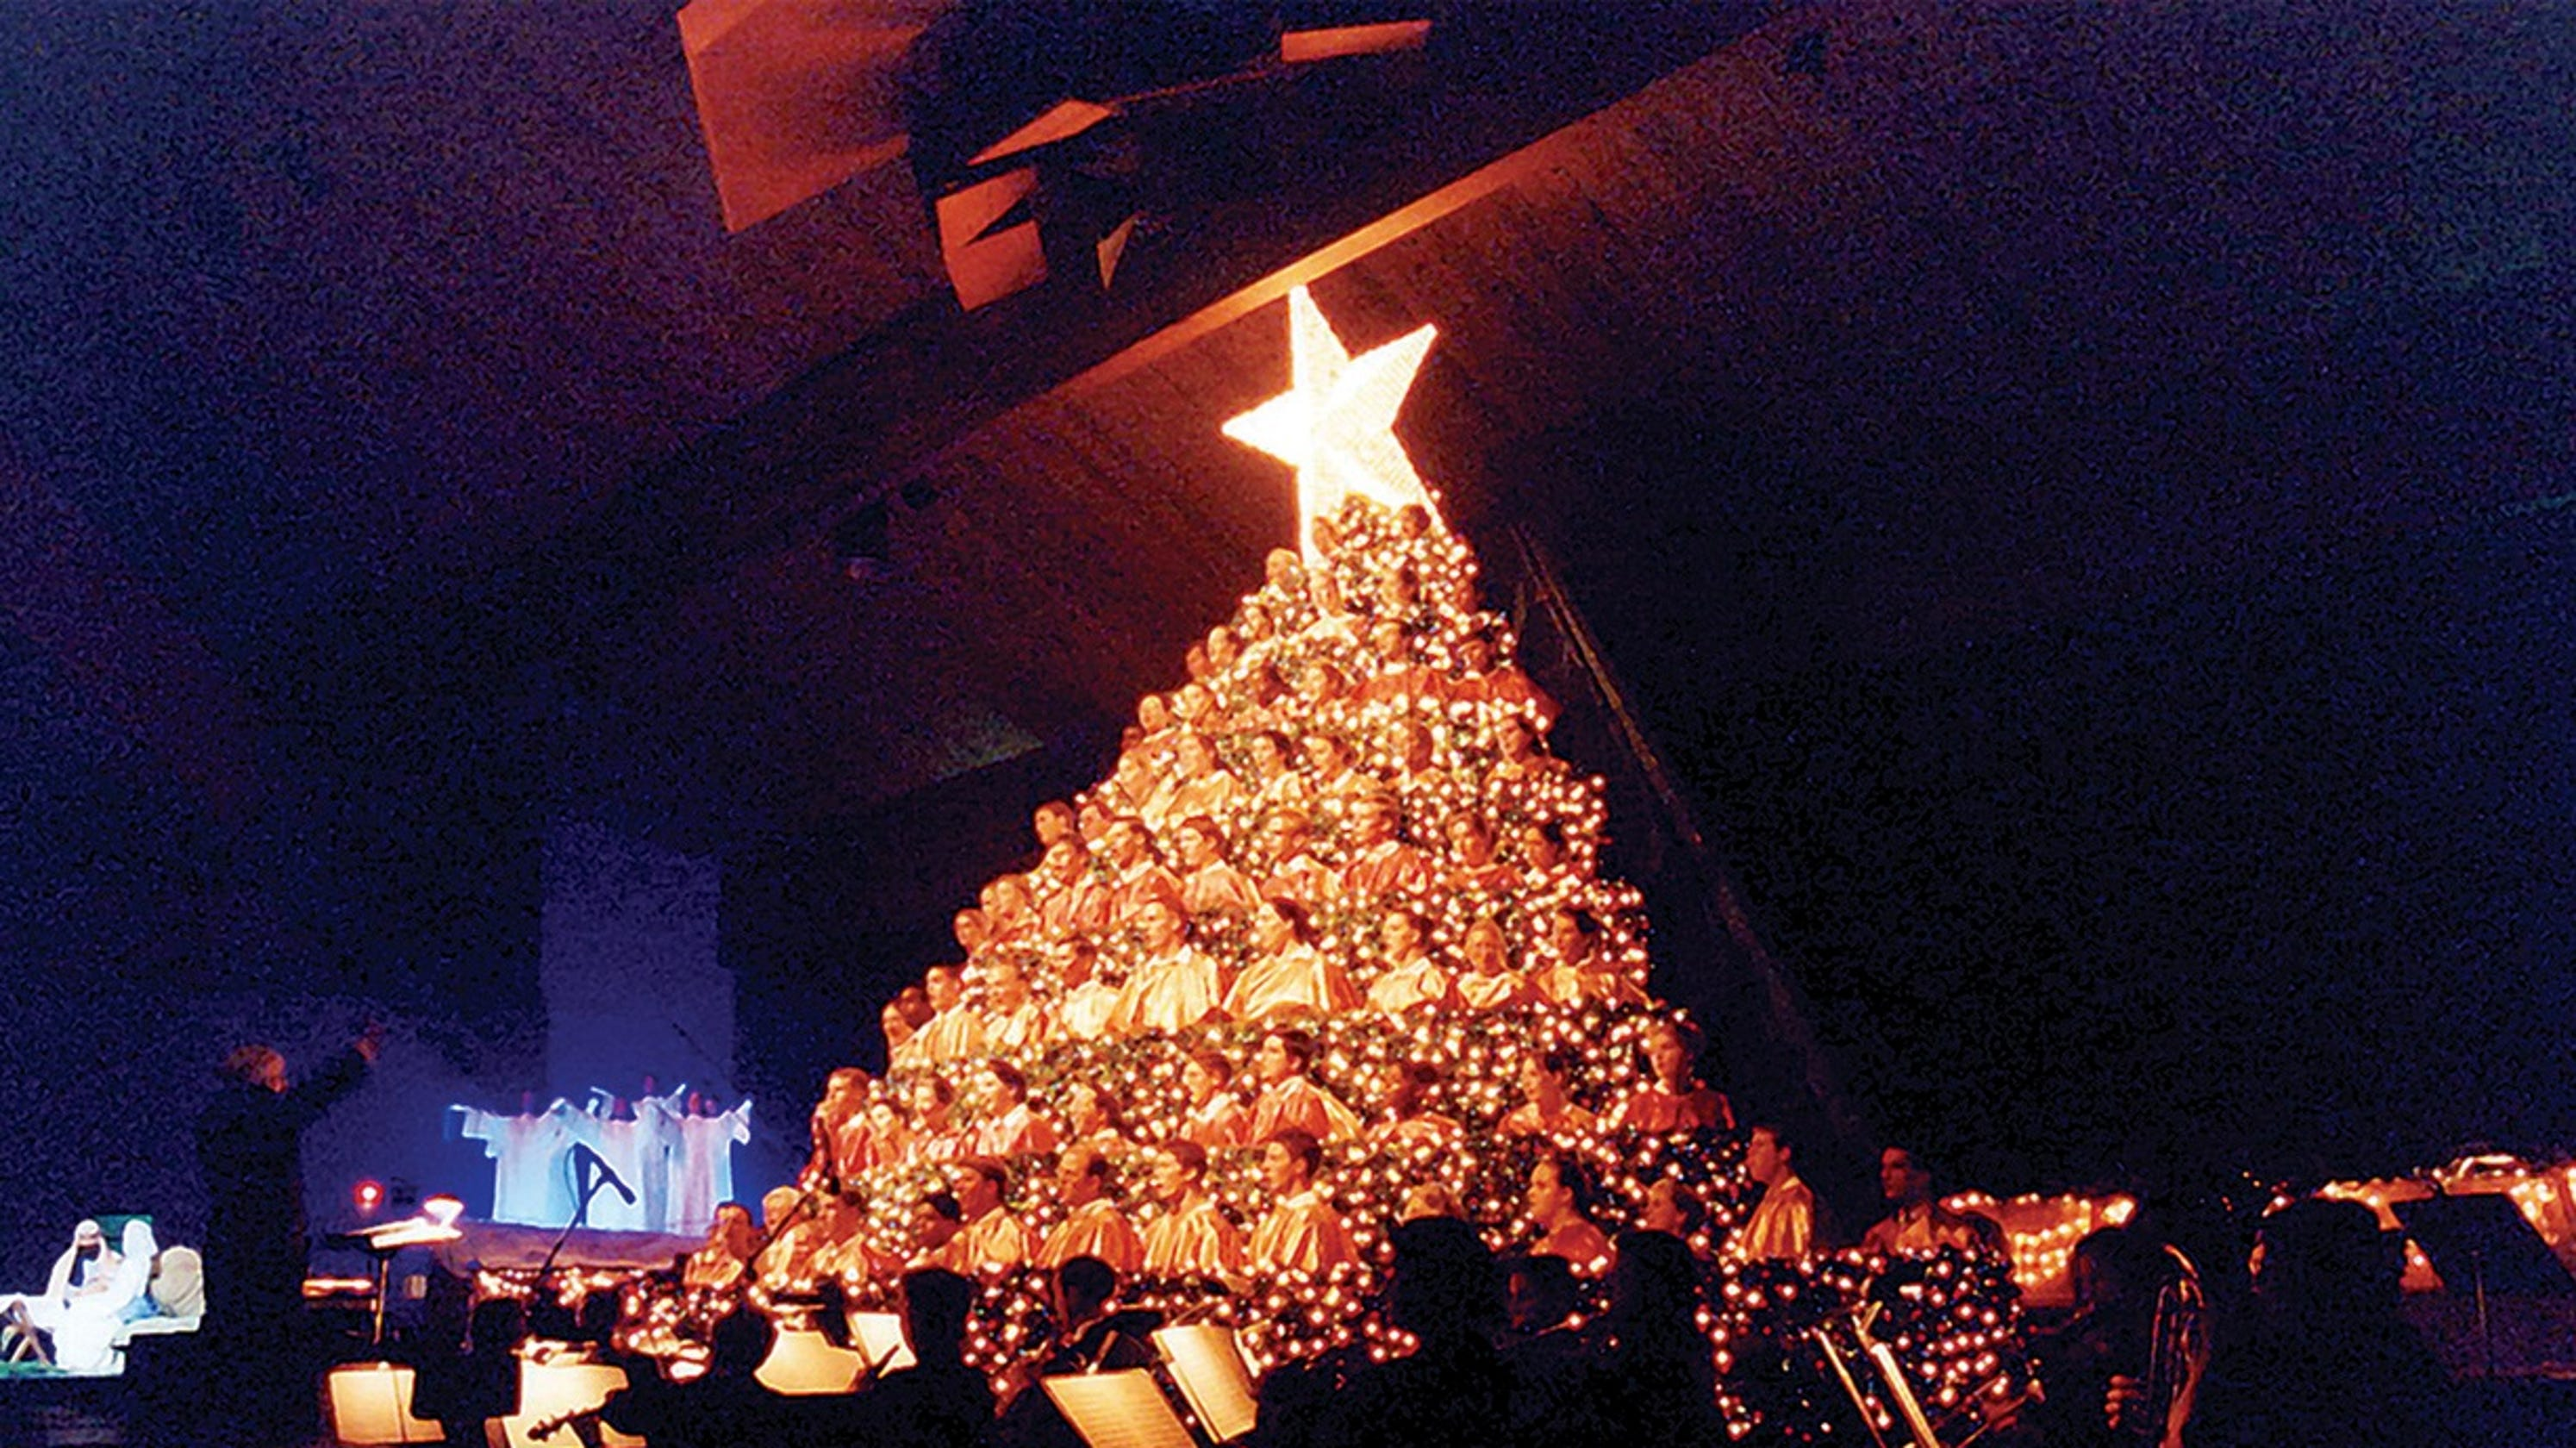 Singing Christmas Tree.Do You Hear What I Hear Hobe Sound Singing Christmas Tree A